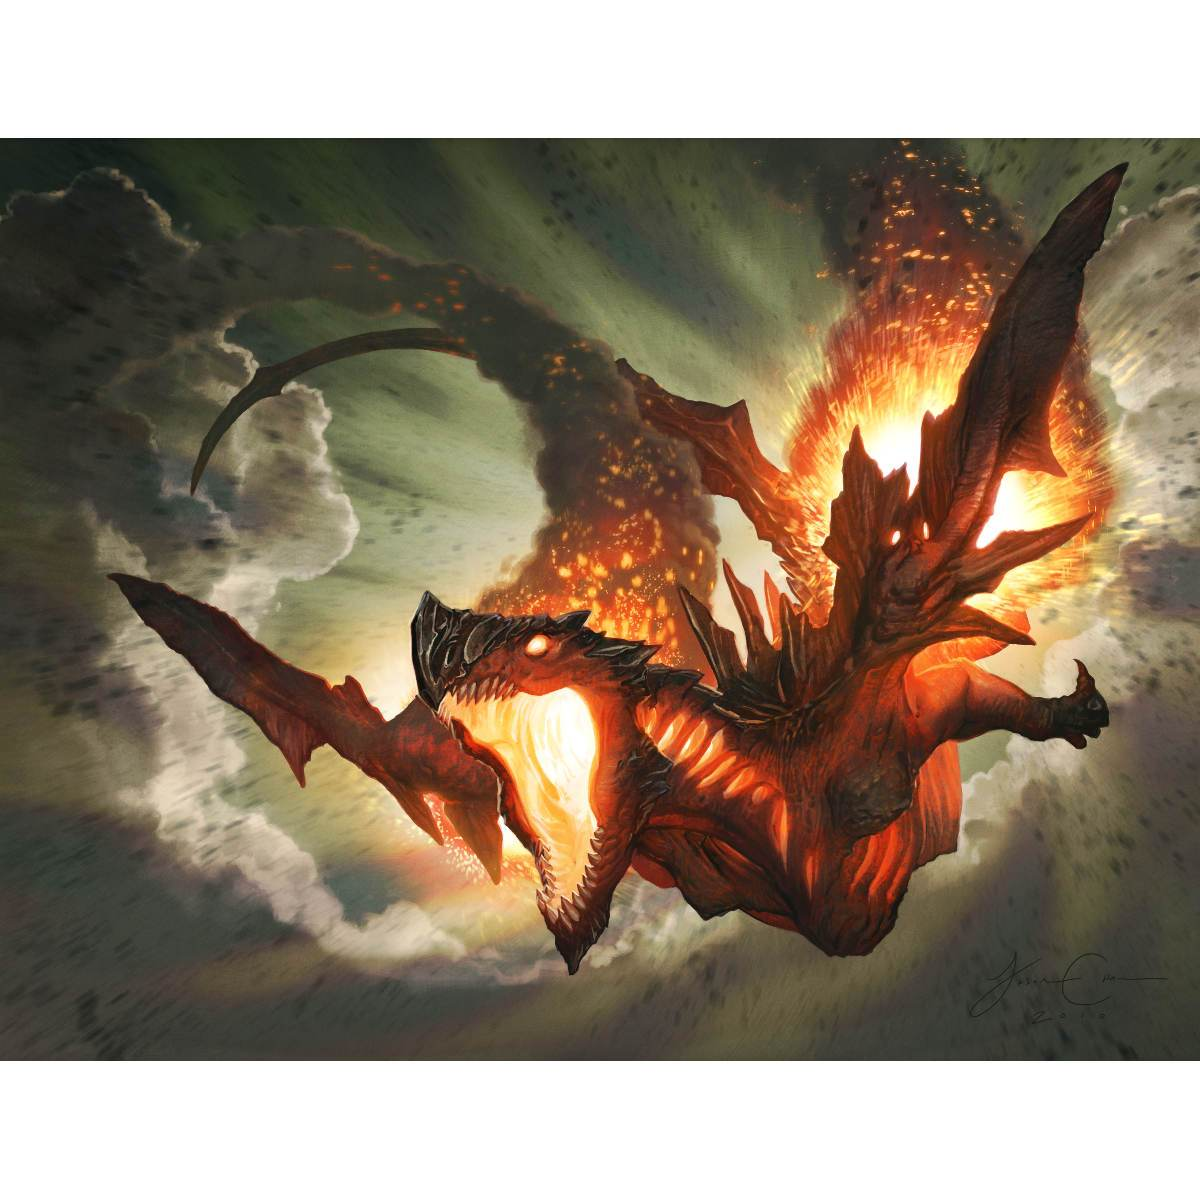 Hellkite Igniter Print - Print - Original Magic Art - Accessories for Magic the Gathering and other card games